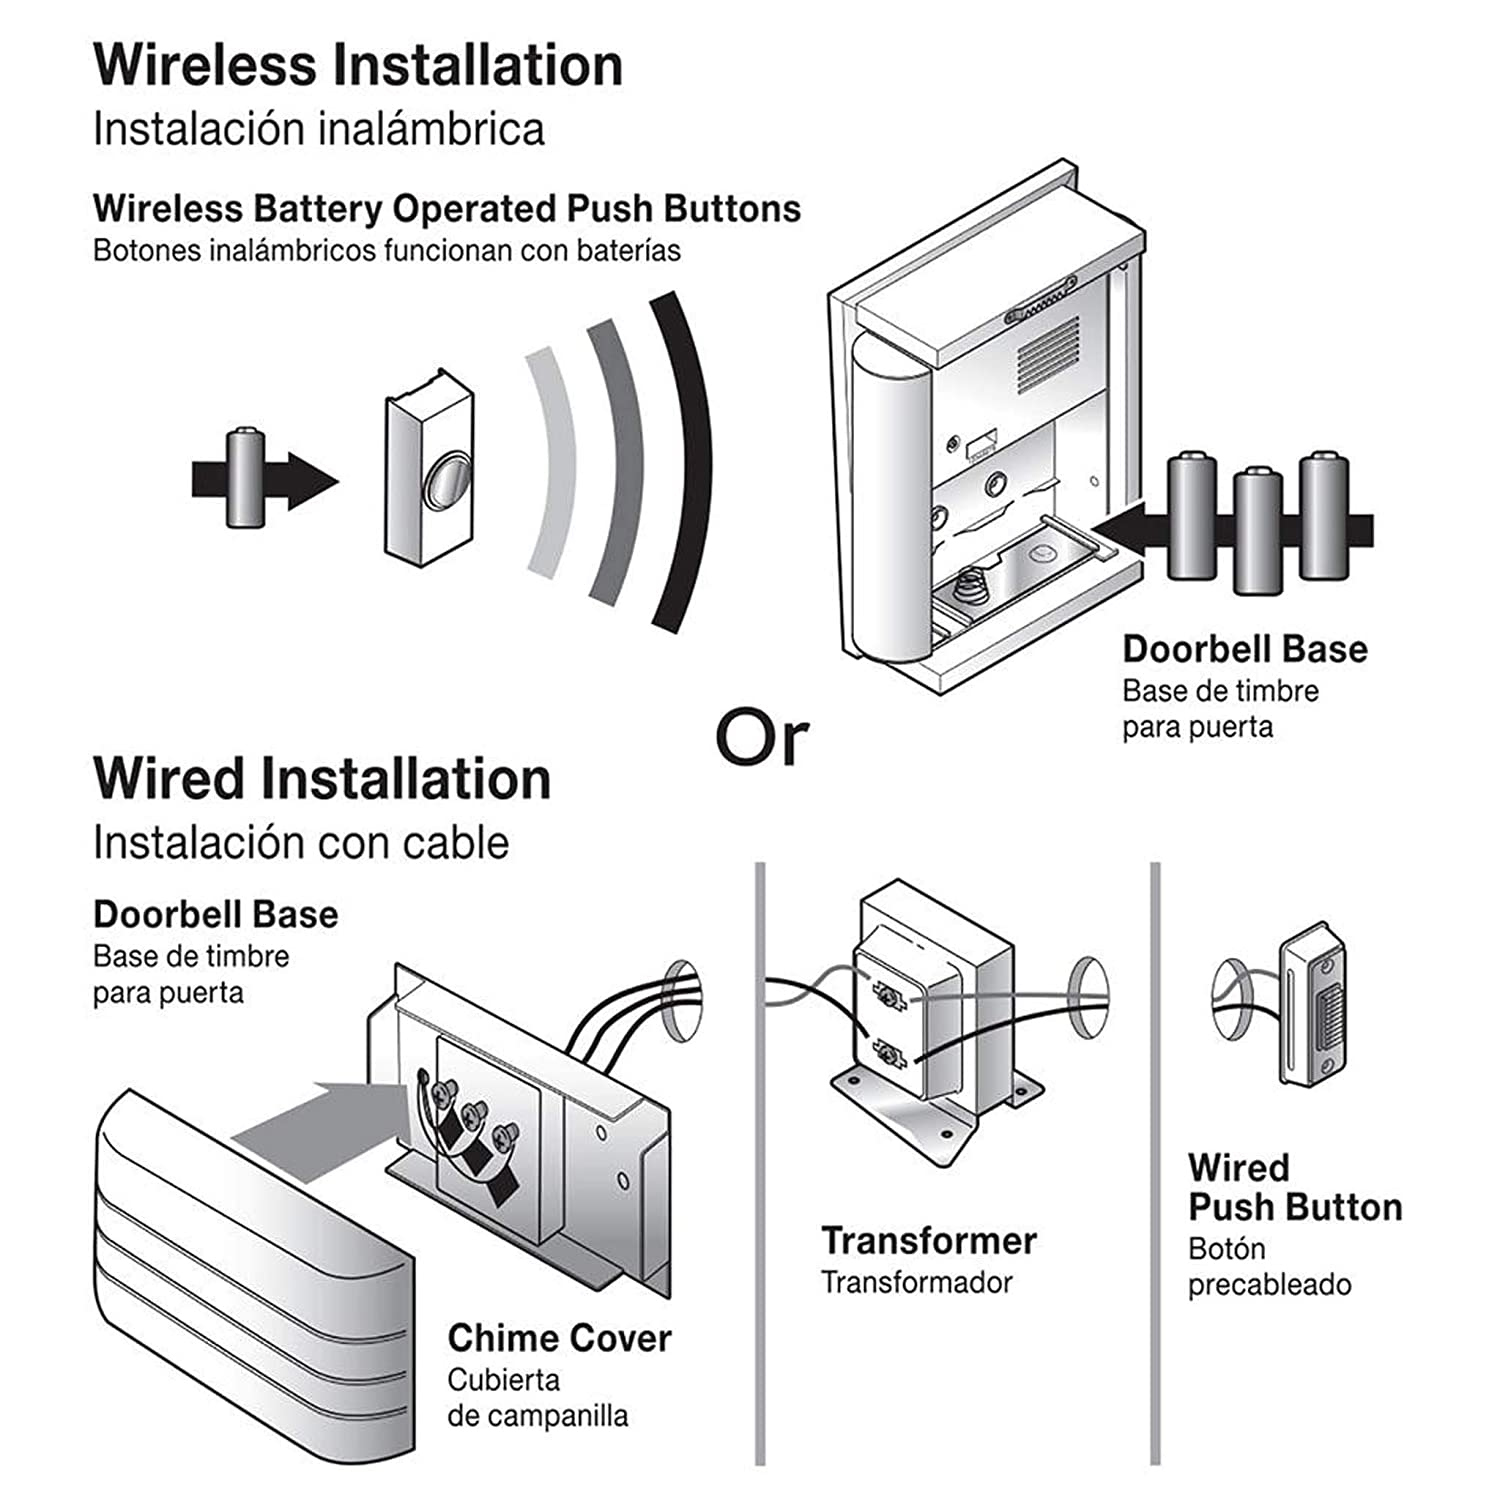 Brushed Nickel wireless / wired doorbell on